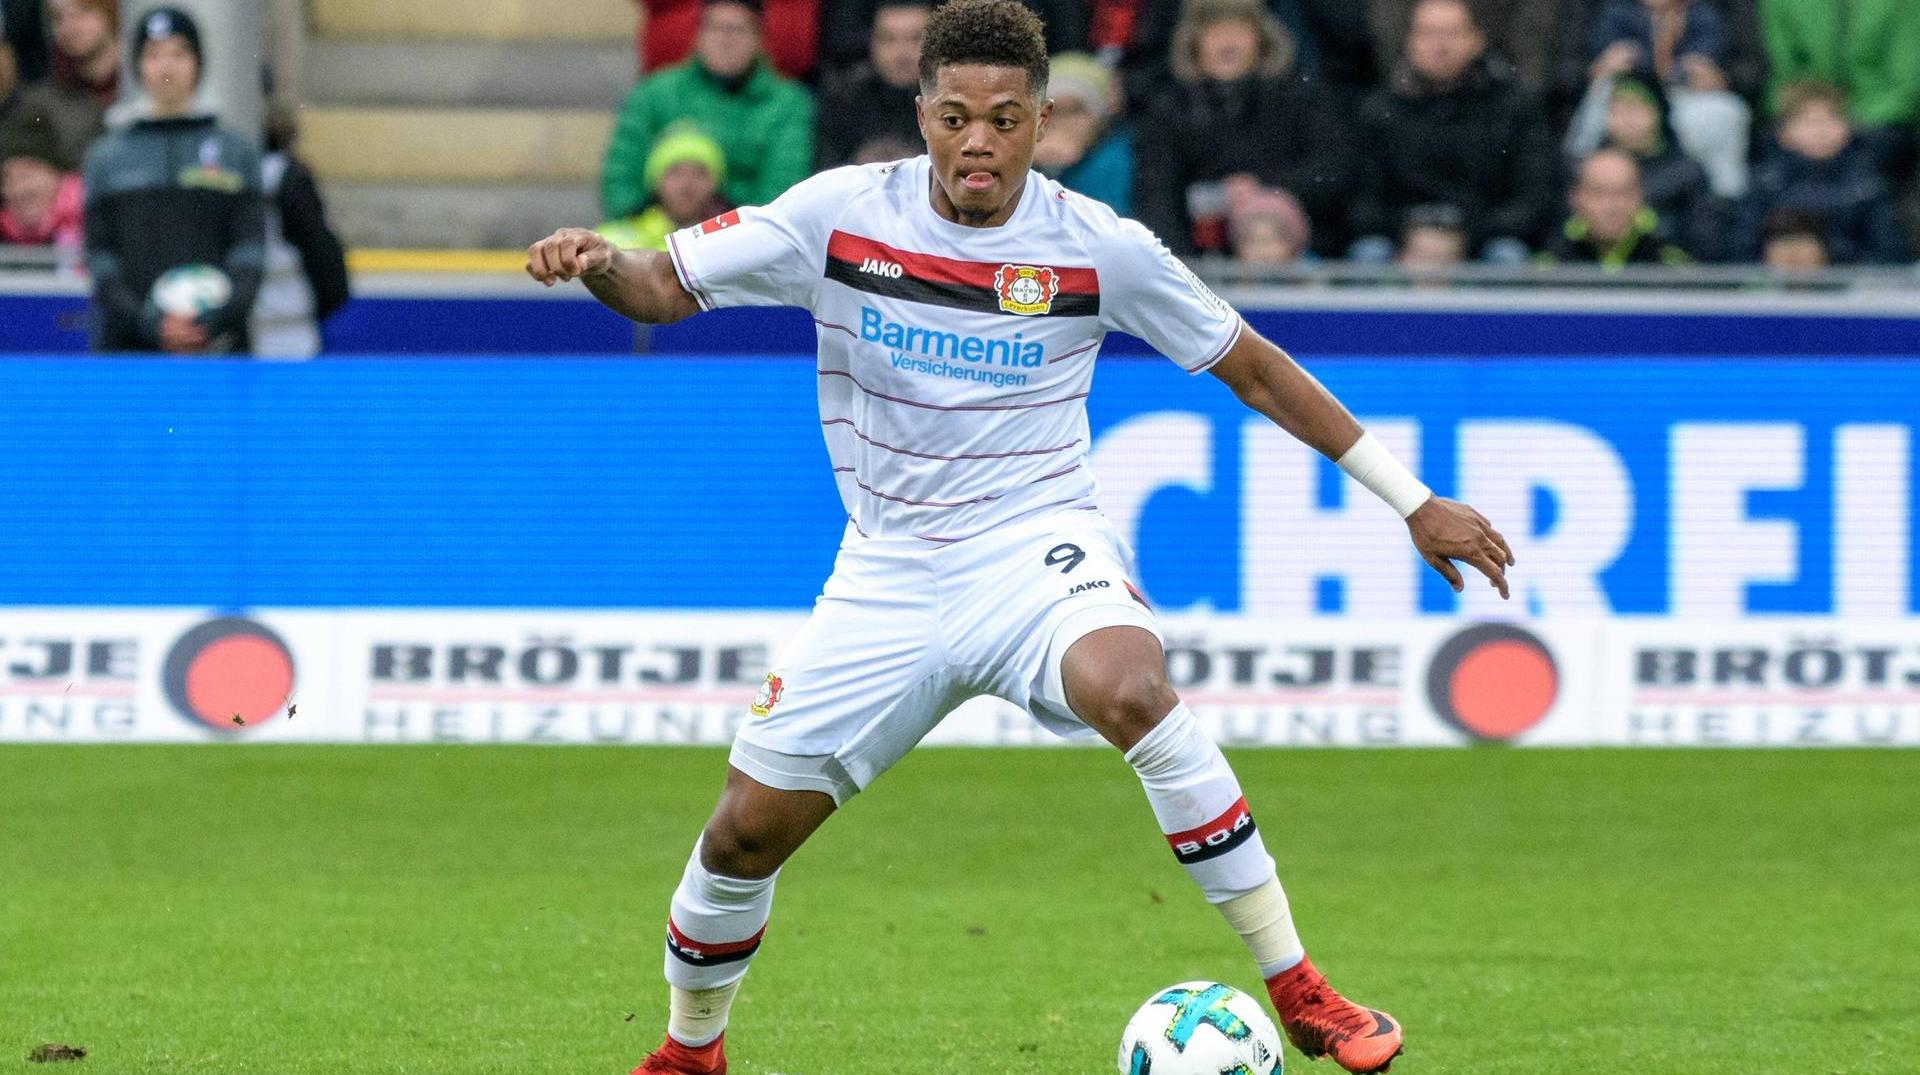 Bayer 04 - Bremen: DFB-Pokal im Live-Ticker. Bayers Leon Bailey ist aktuell in Topform. (Quelle: Beautiful Sports)